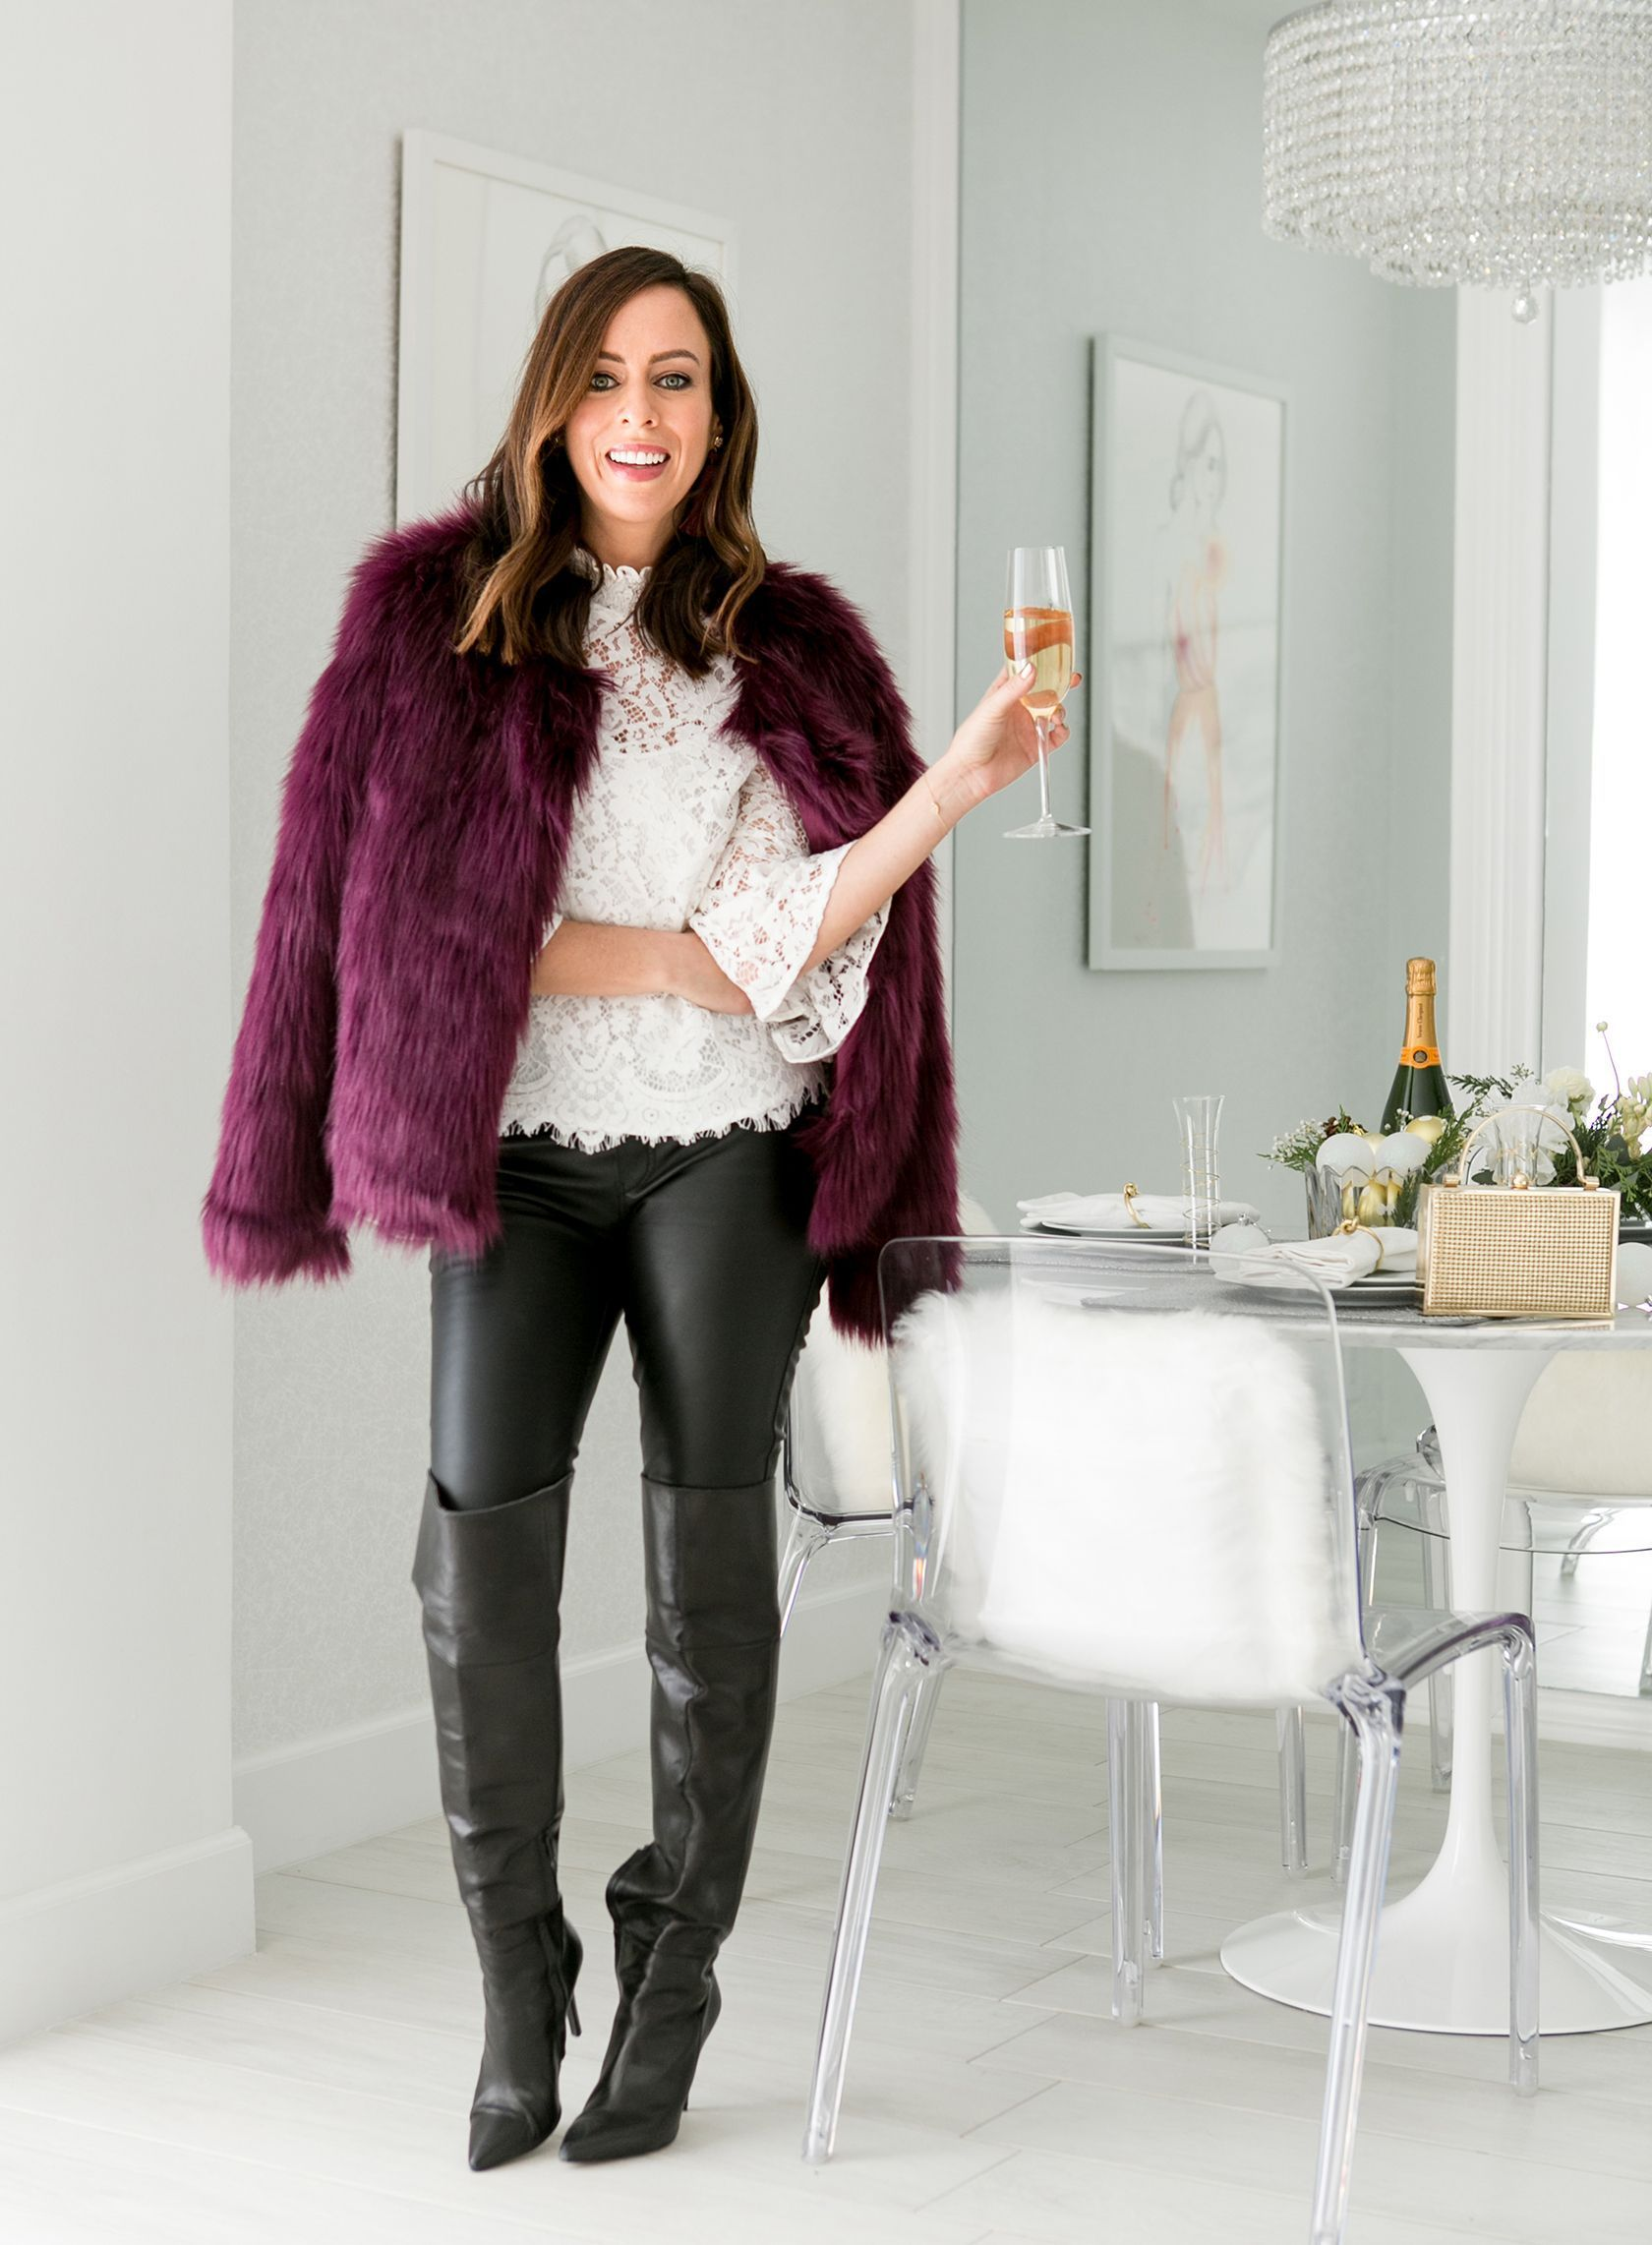 a93e1c8f363 45 Graceful Holiday Party Outfits Ideas